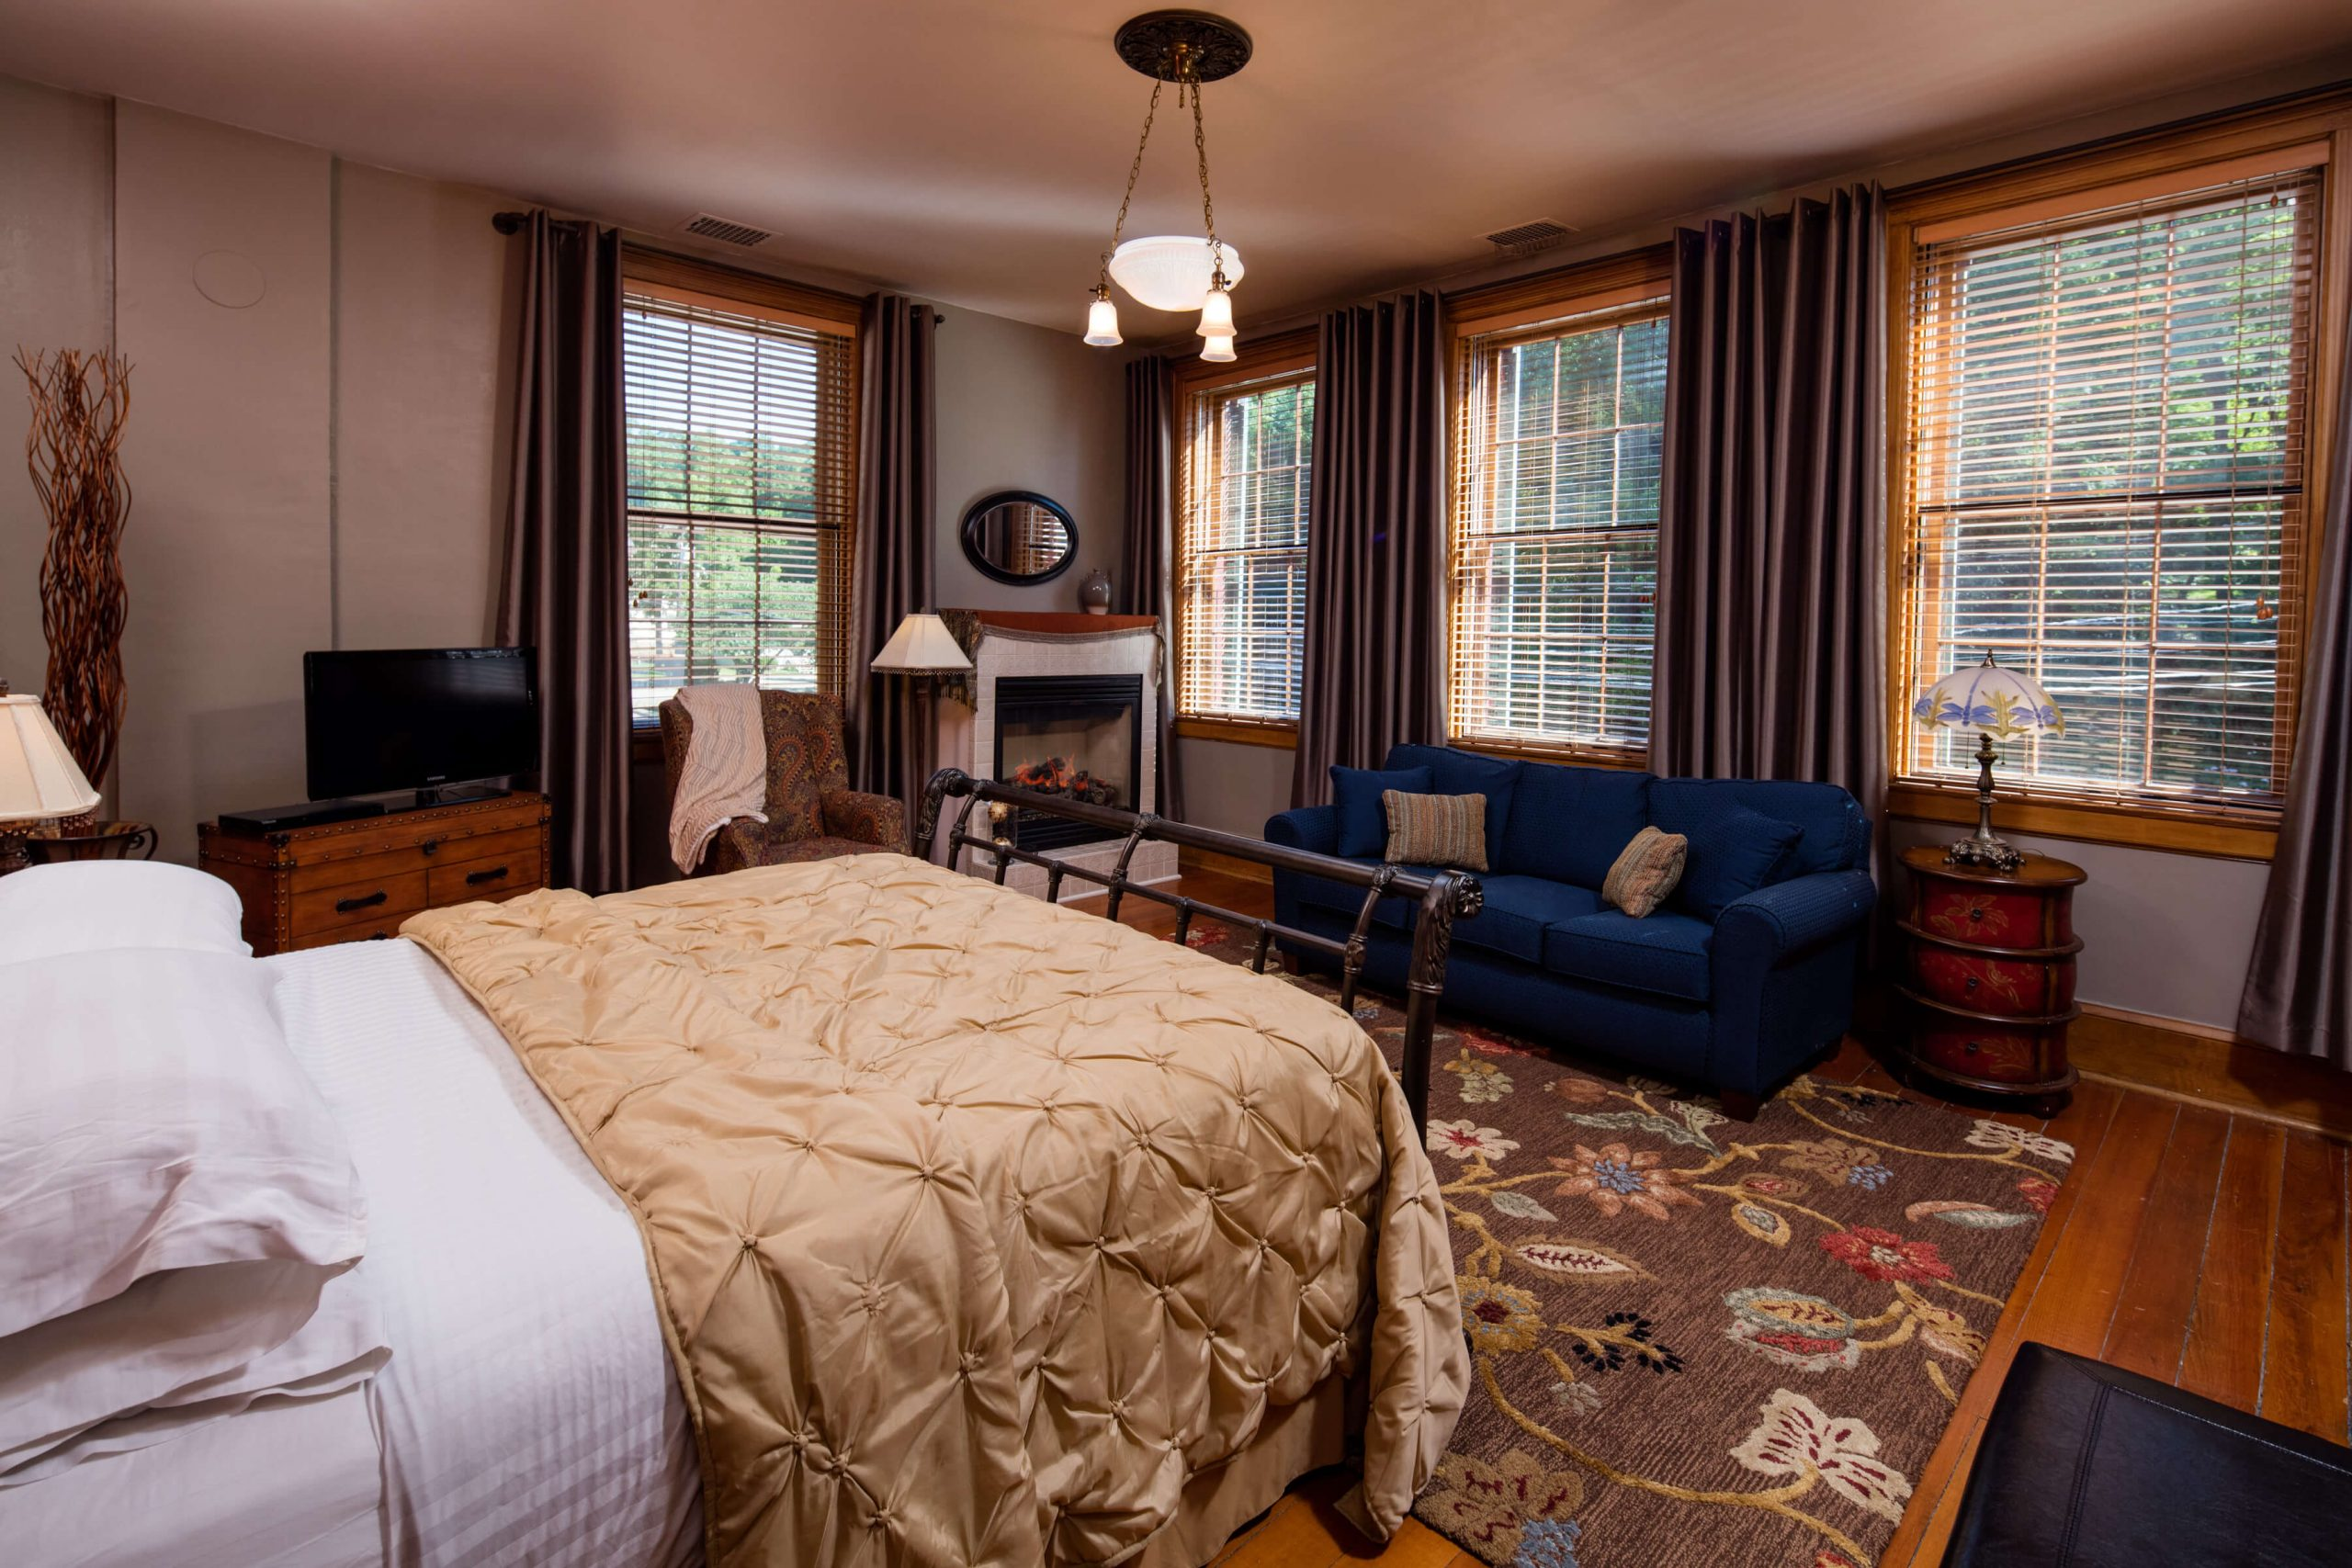 bed, fireplace, rug, windows, couch in Julia suite